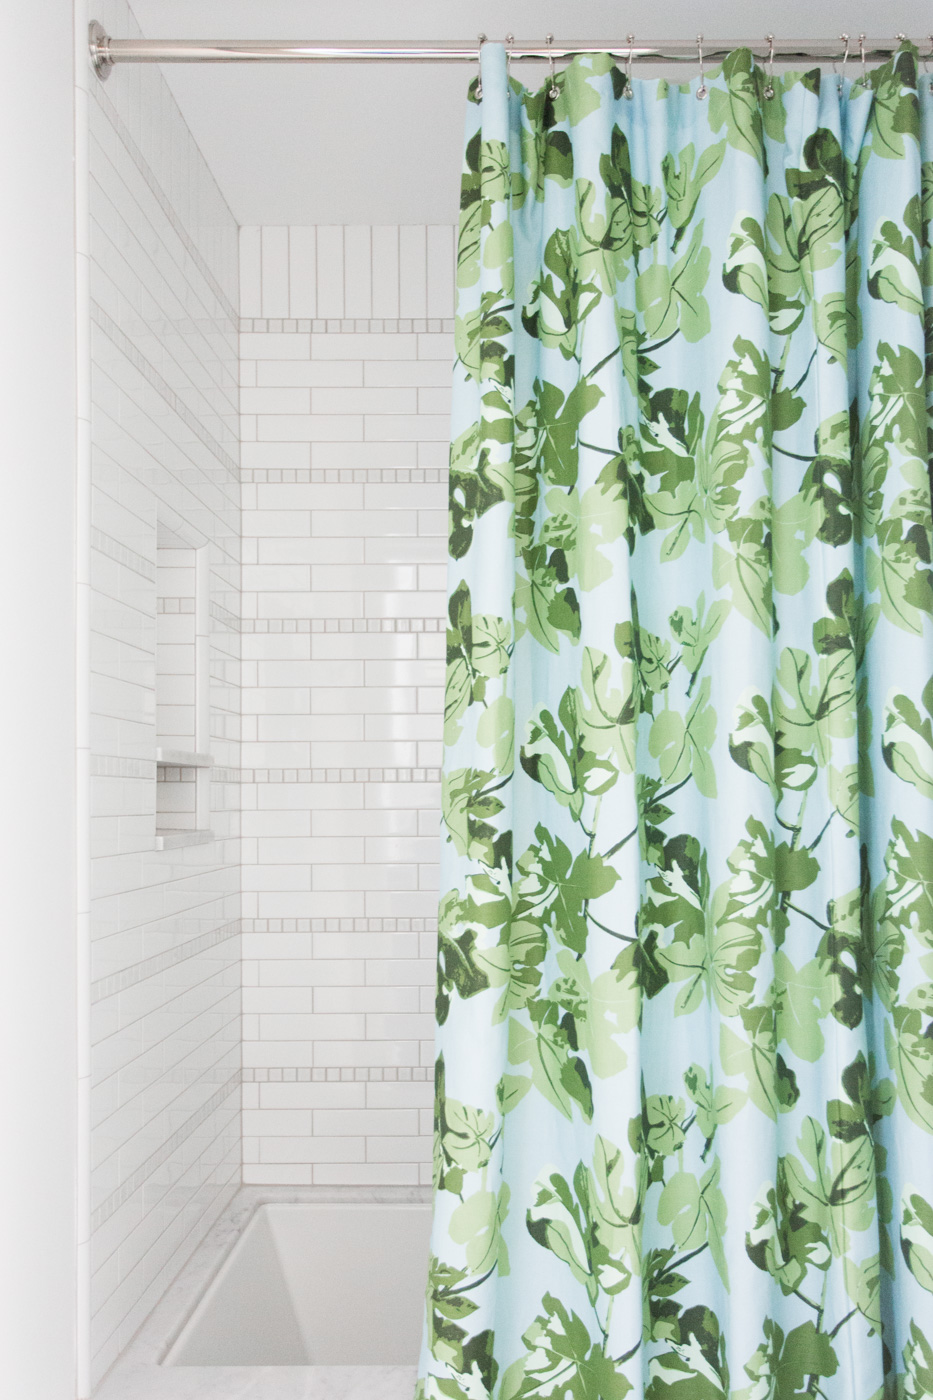 Patterned+shower+curtain+and+striped+tile+detail+||+Studio+McGee.jpg